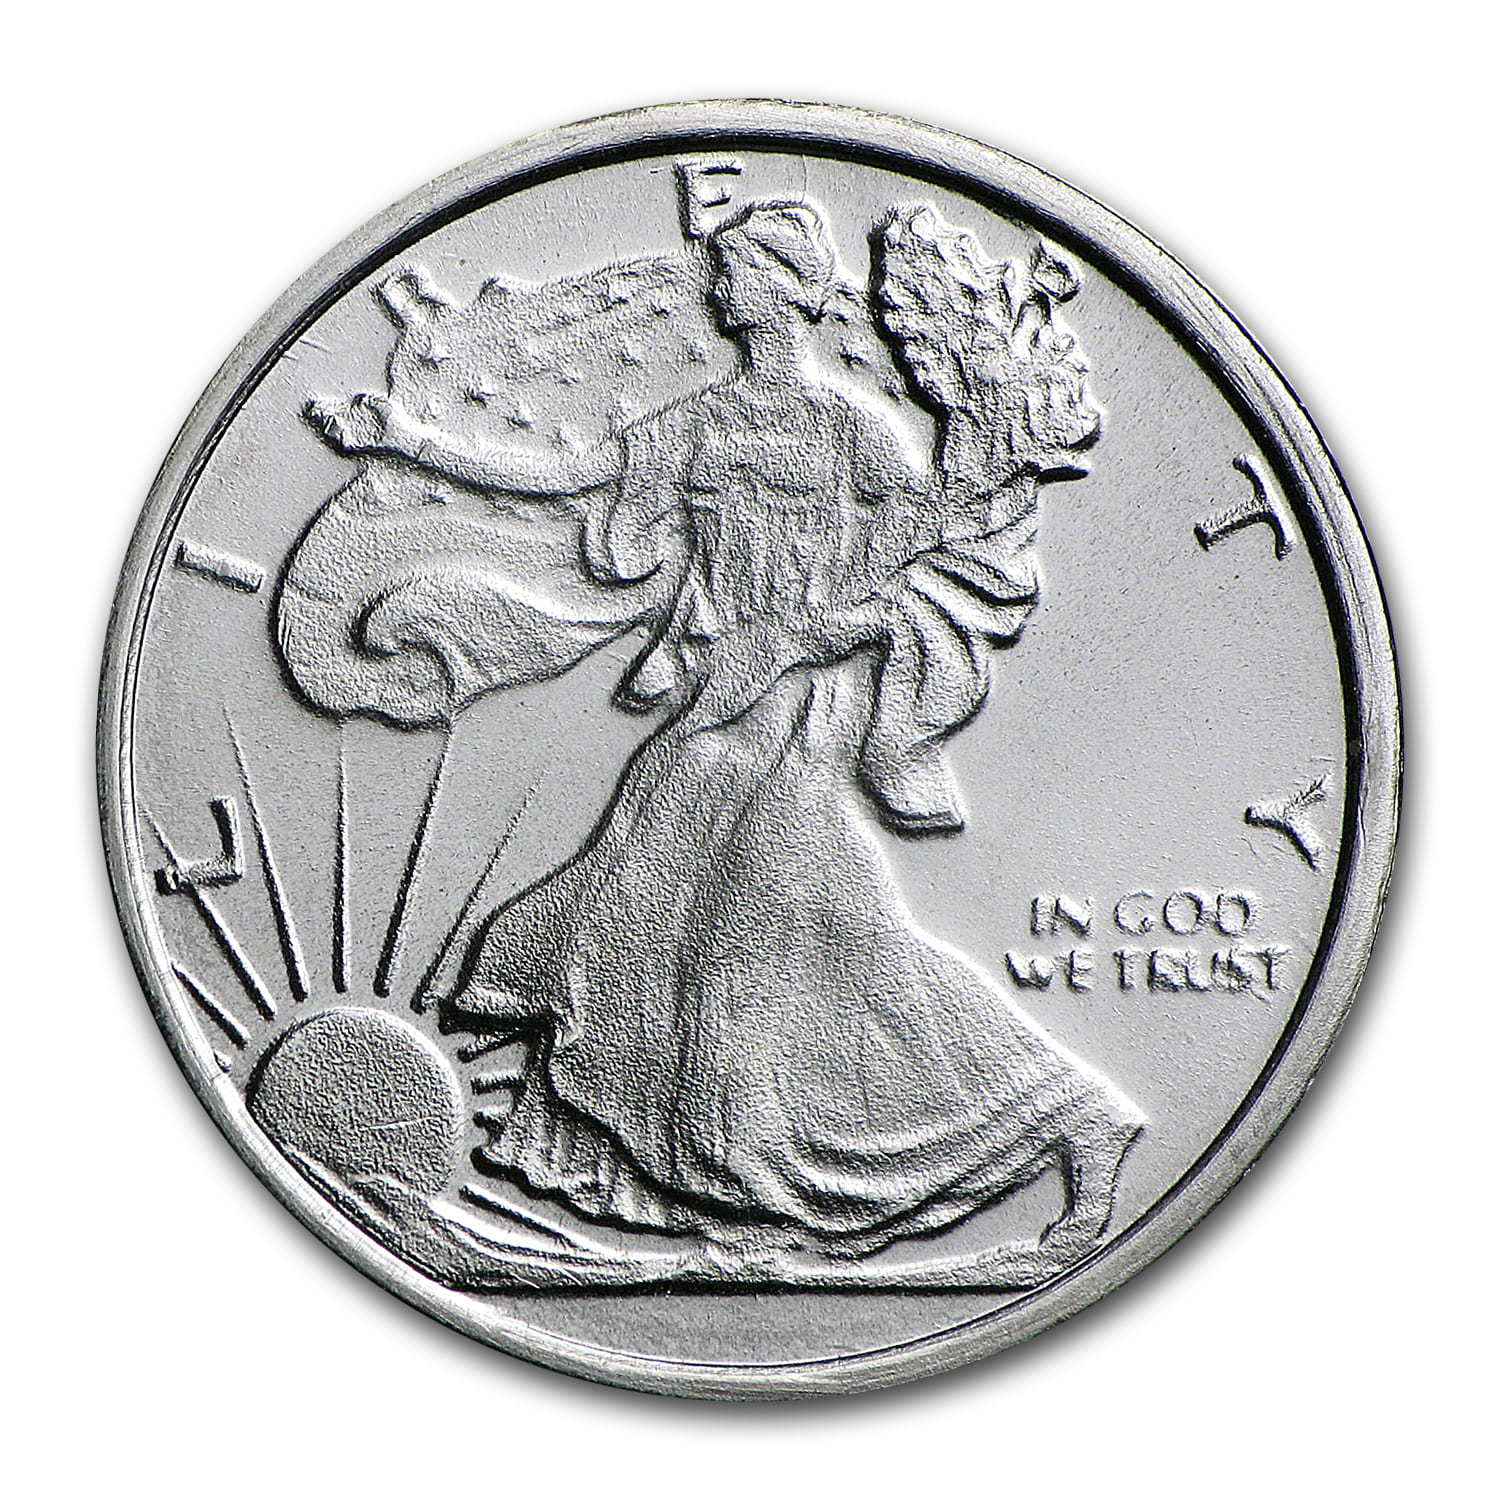 1/4 oz Silver Round - Walking Liberty